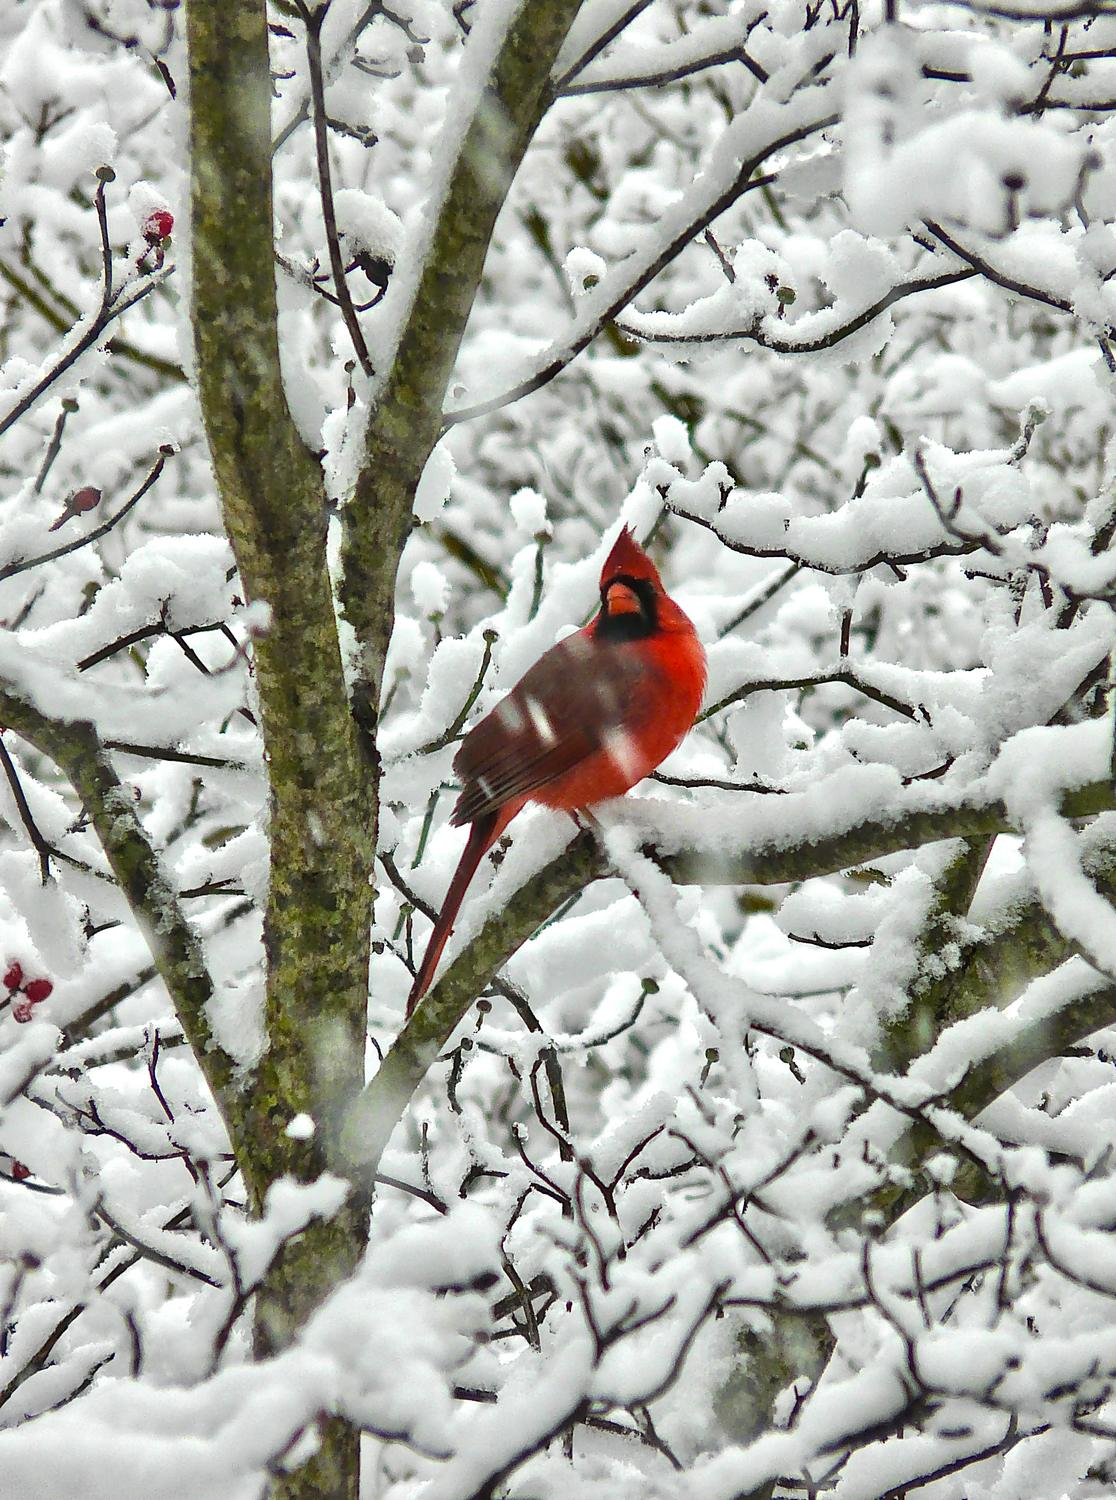 -  Panasonic DMC-FZ18 - Mr. Cardinal sits in a snowy tree. - - art  - photography - by Tony Karp